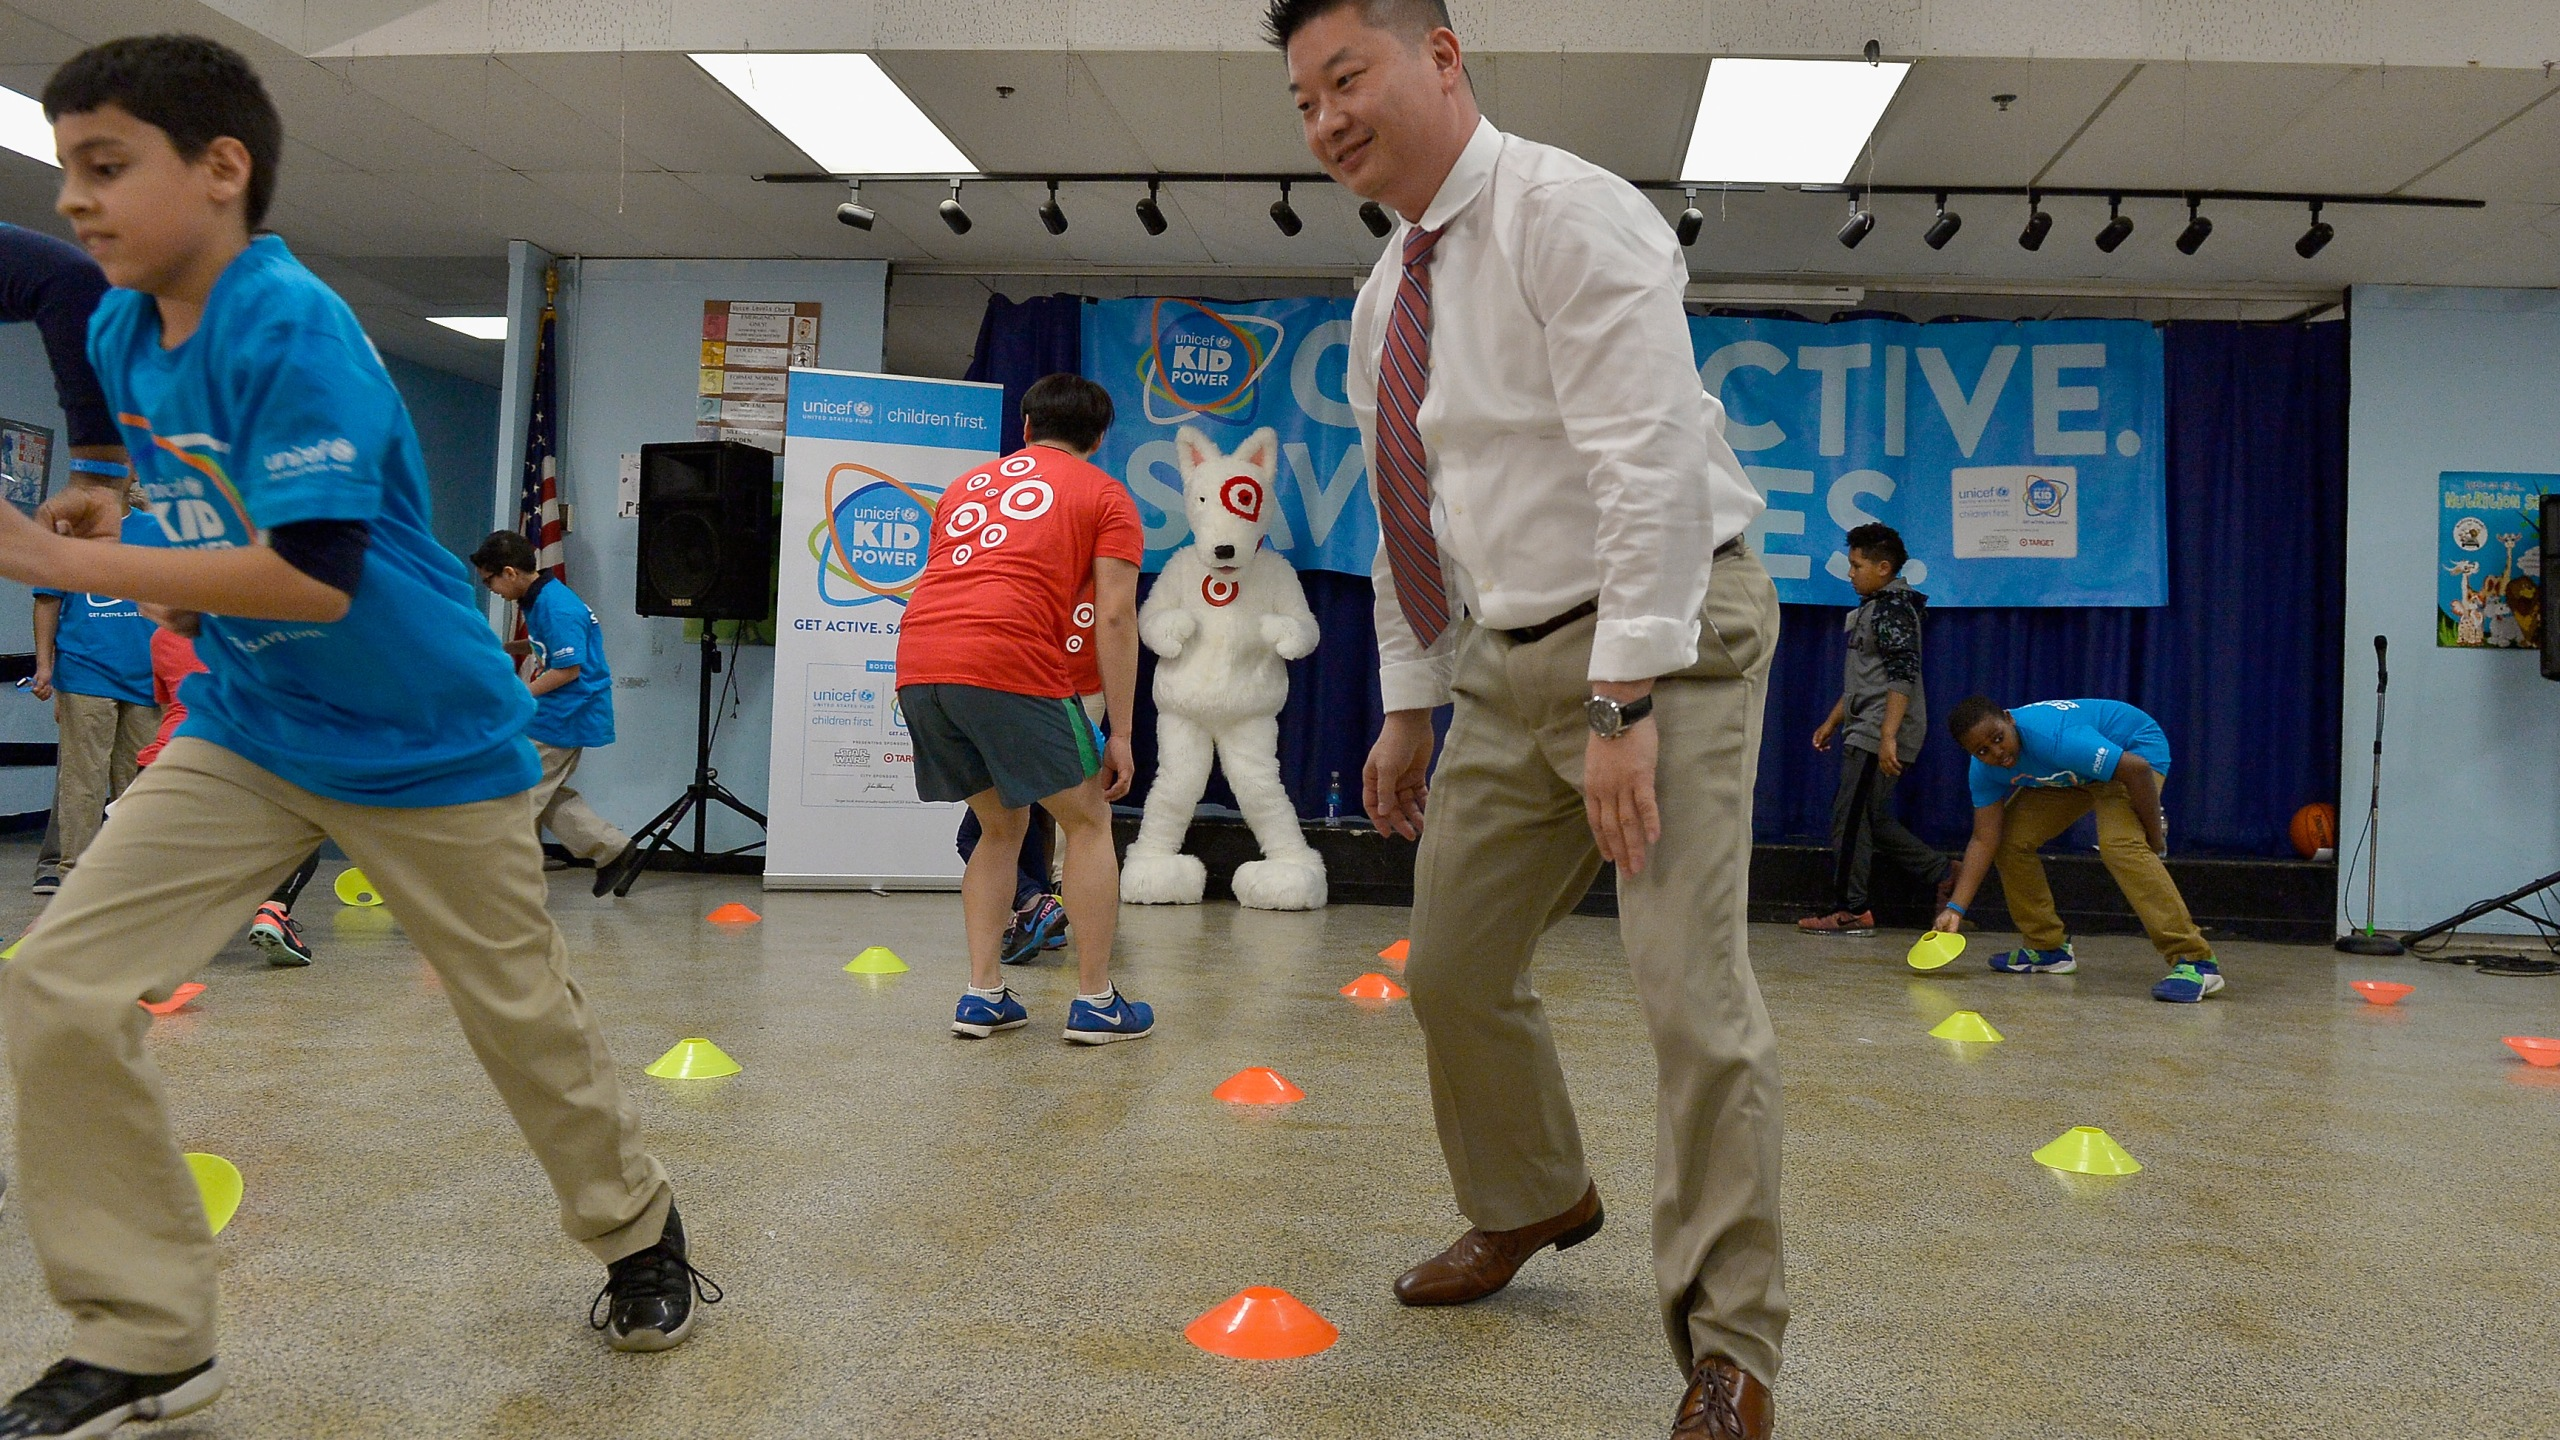 Boston Public School Superintendent, Tommy Chang and students Celebrate the Impact of Local Kids Getting Active and Saving Lives with UNICEF Kid Power Boston on March 28, 2016, in Boston, Massachusetts. (Credit: Paul Marotta/Getty Images for UNICEF)